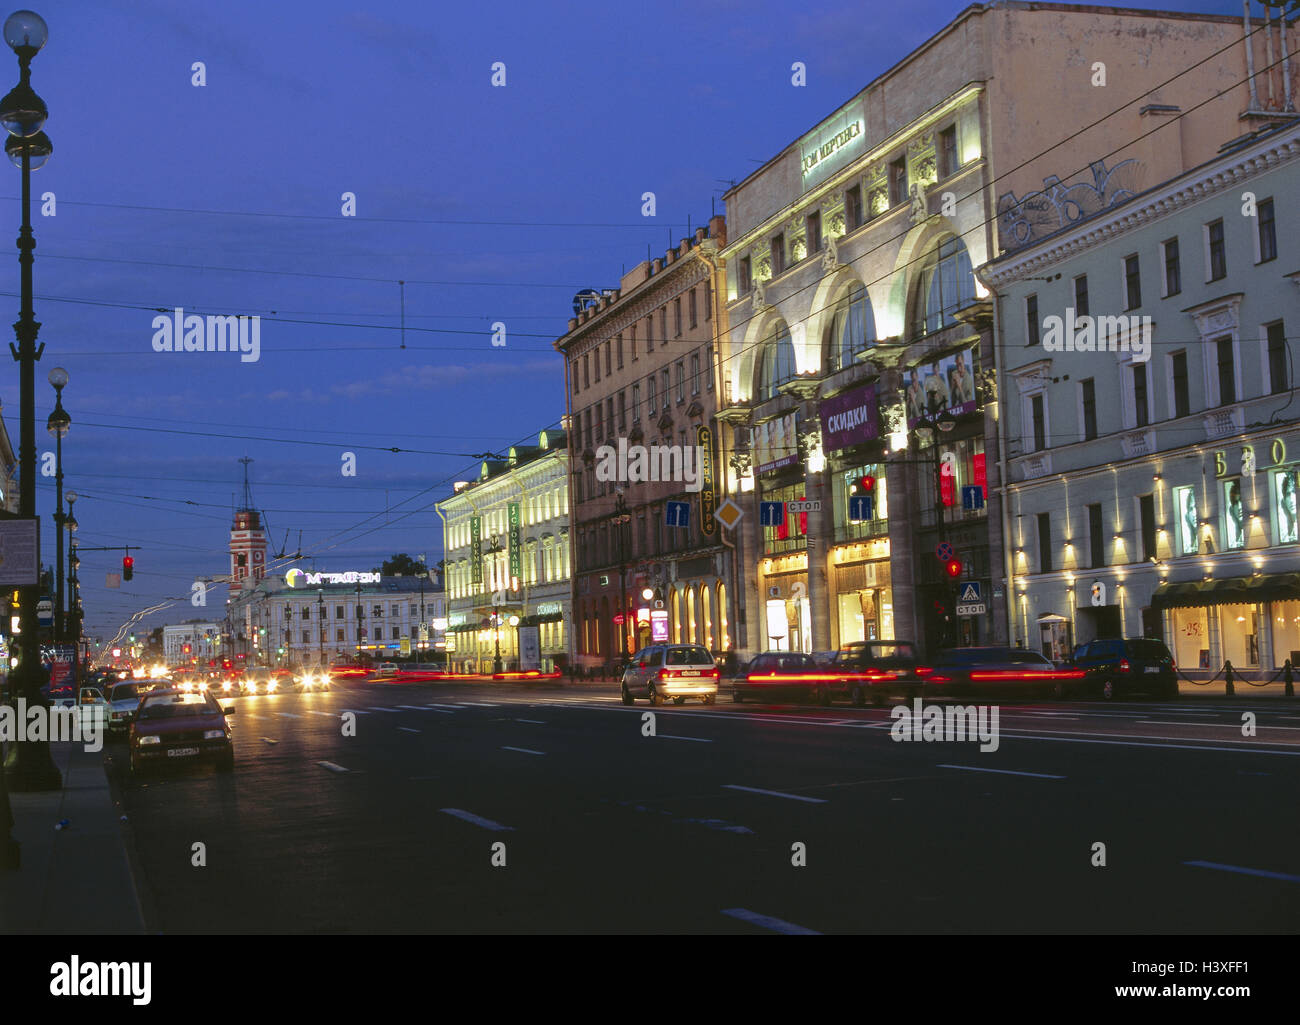 Russia, Saint Petersburg, Newskij brochure, street scene, evening Eurasia, Europe, East, Europe, Rossiskaja Federazija, - Stock Image